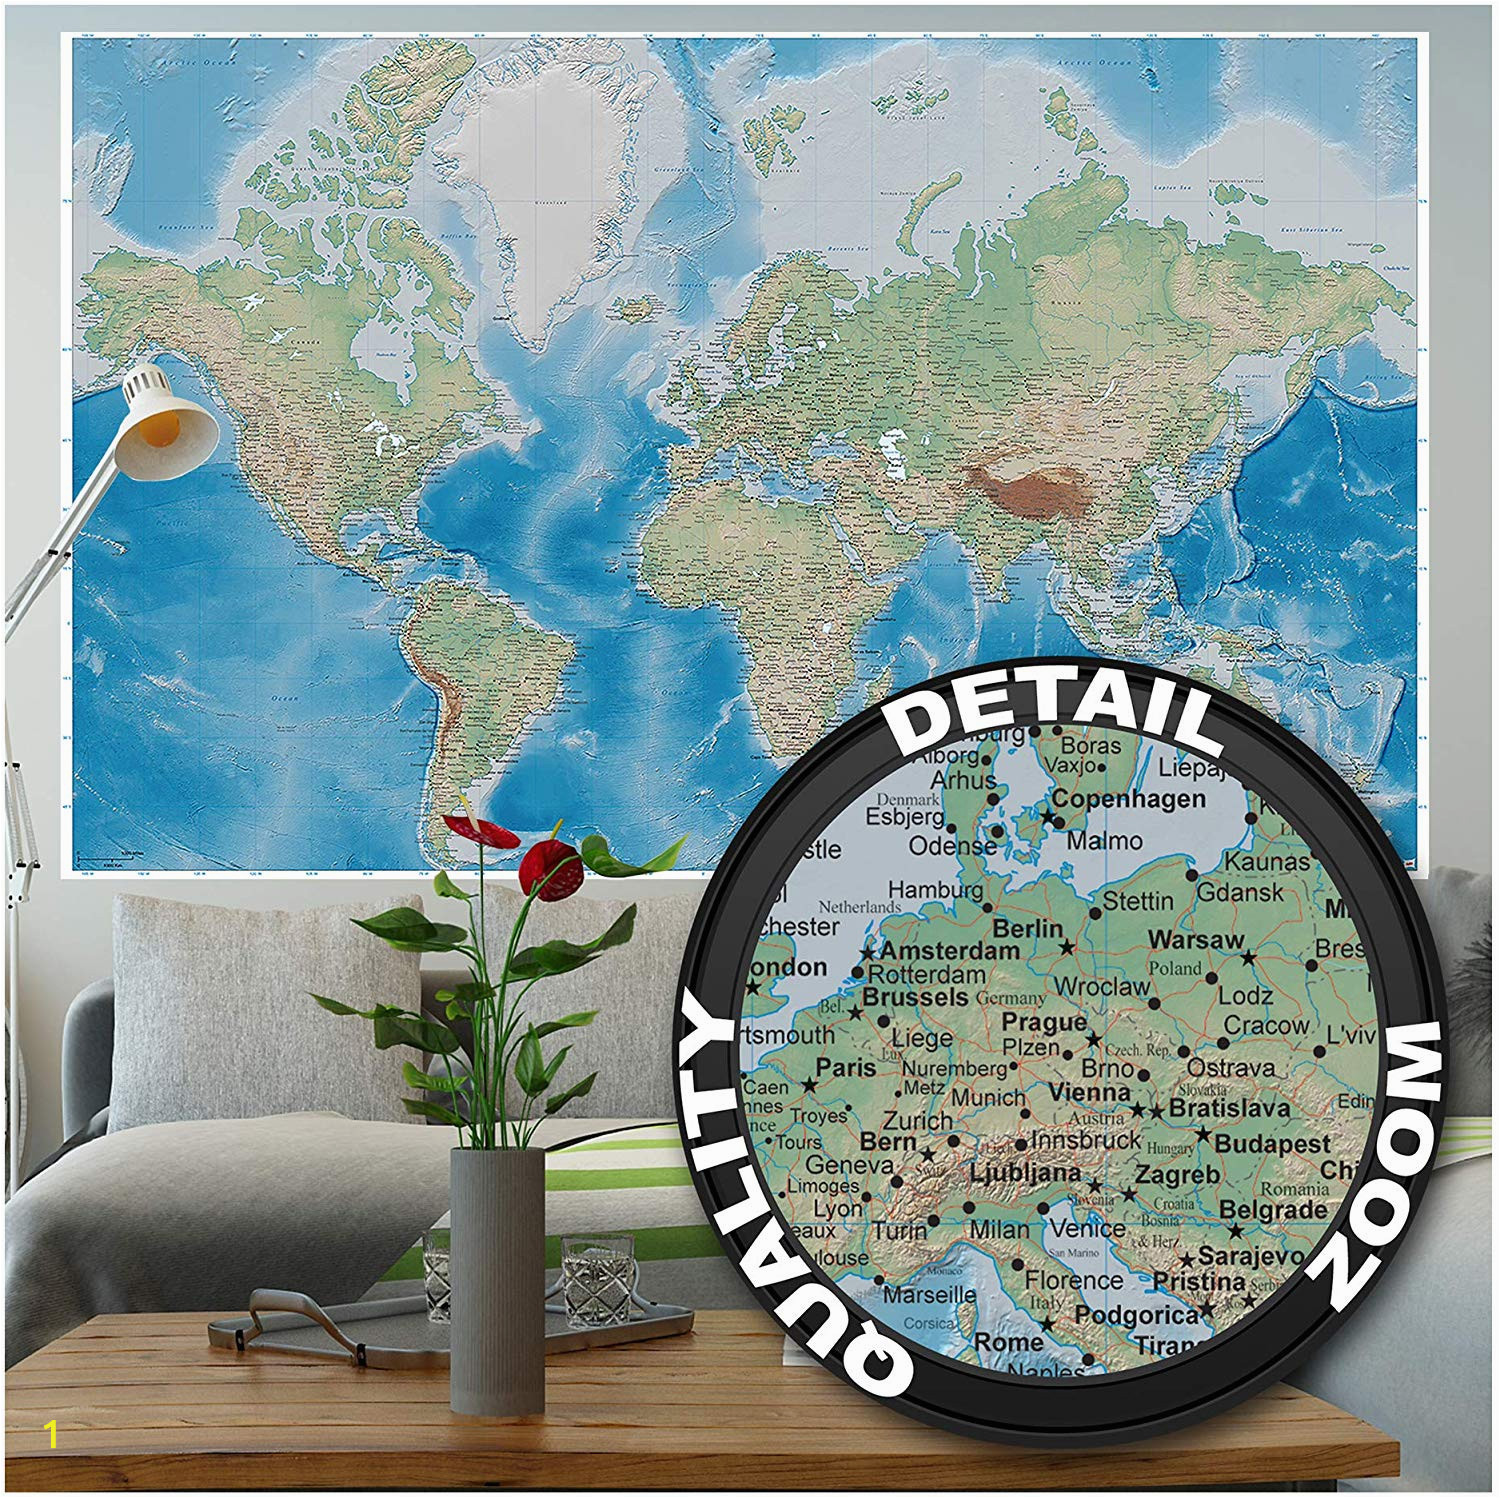 Wall Size World Map Mural Mural – World Map – Wall Picture Decoration Miller Projection In Plastically Relief Design Earth atlas Globe Wallposter Poster Decor 82 7 X 55